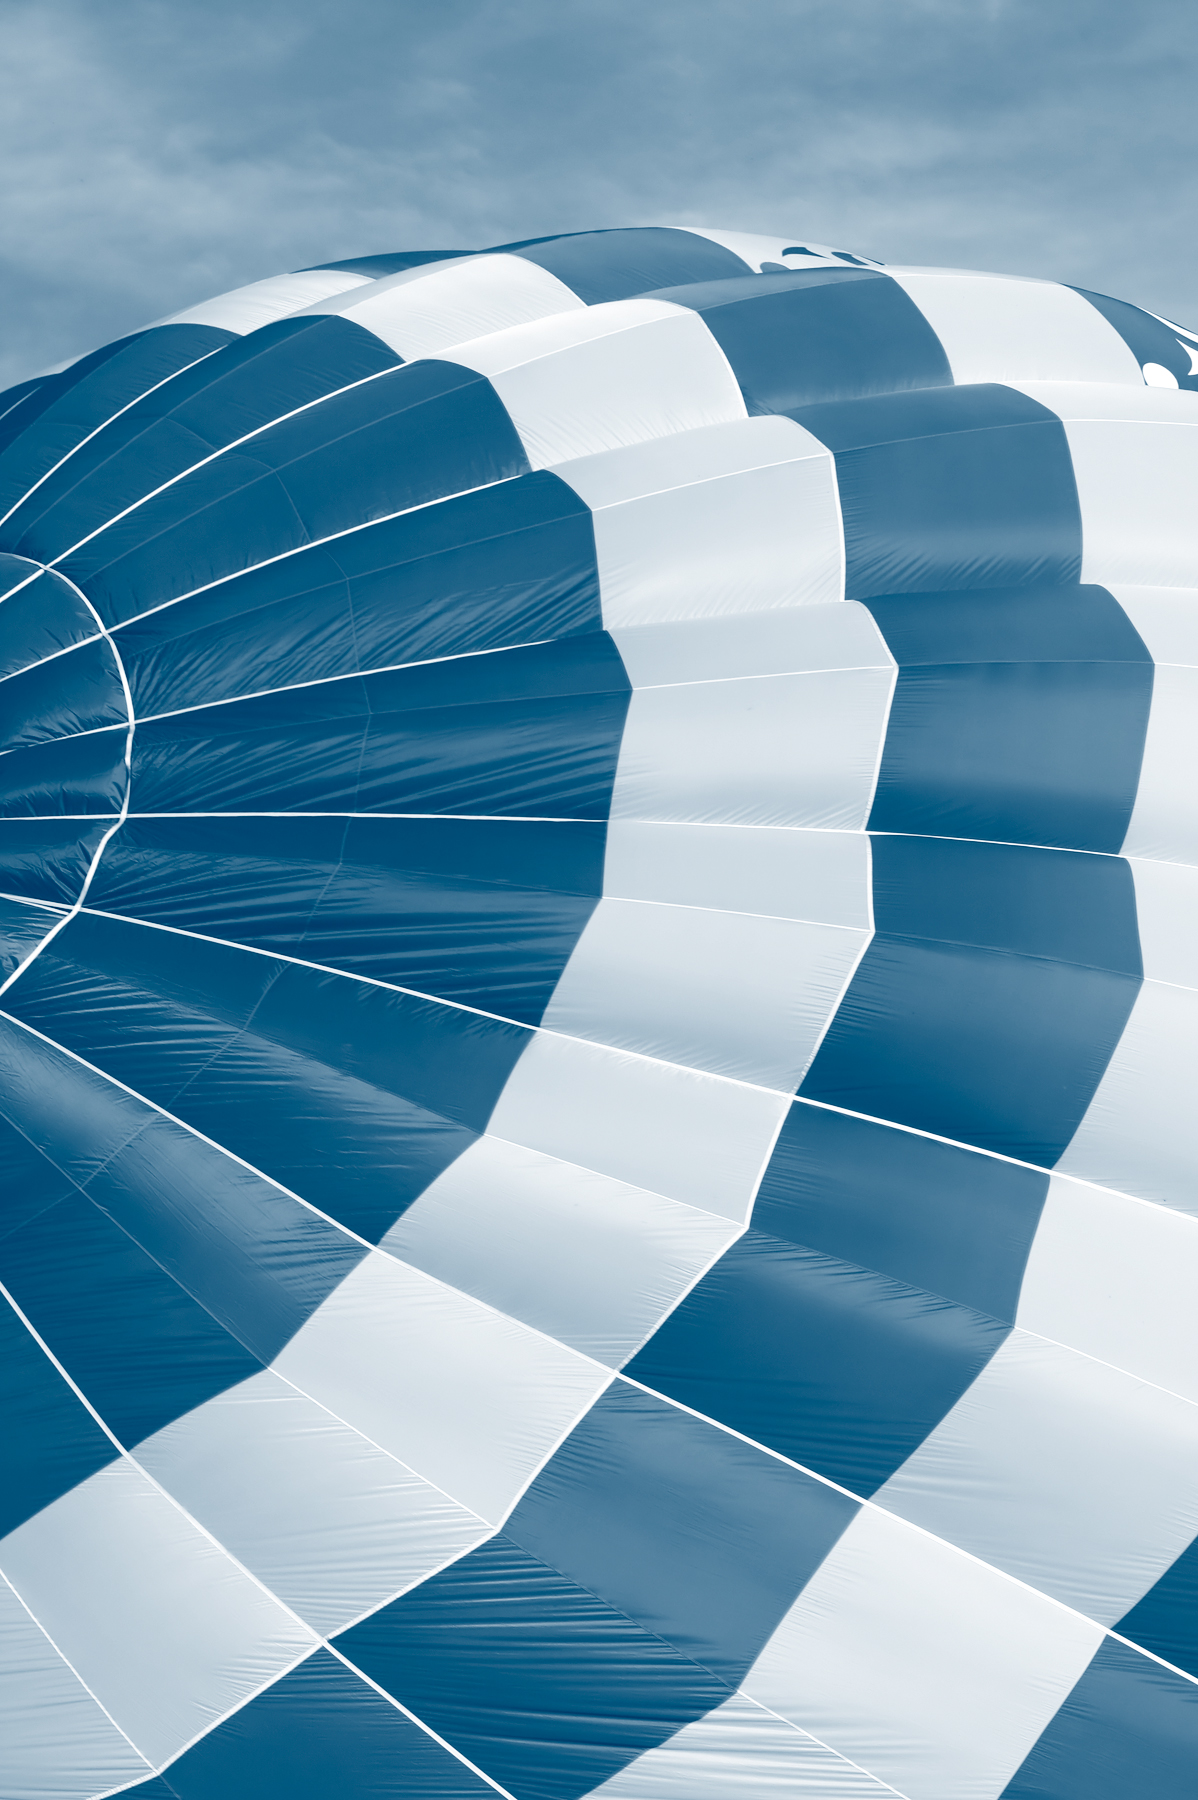 Hot Air Balloon Close-up, Air, Stock, Photo, Photograph, HQ Photo